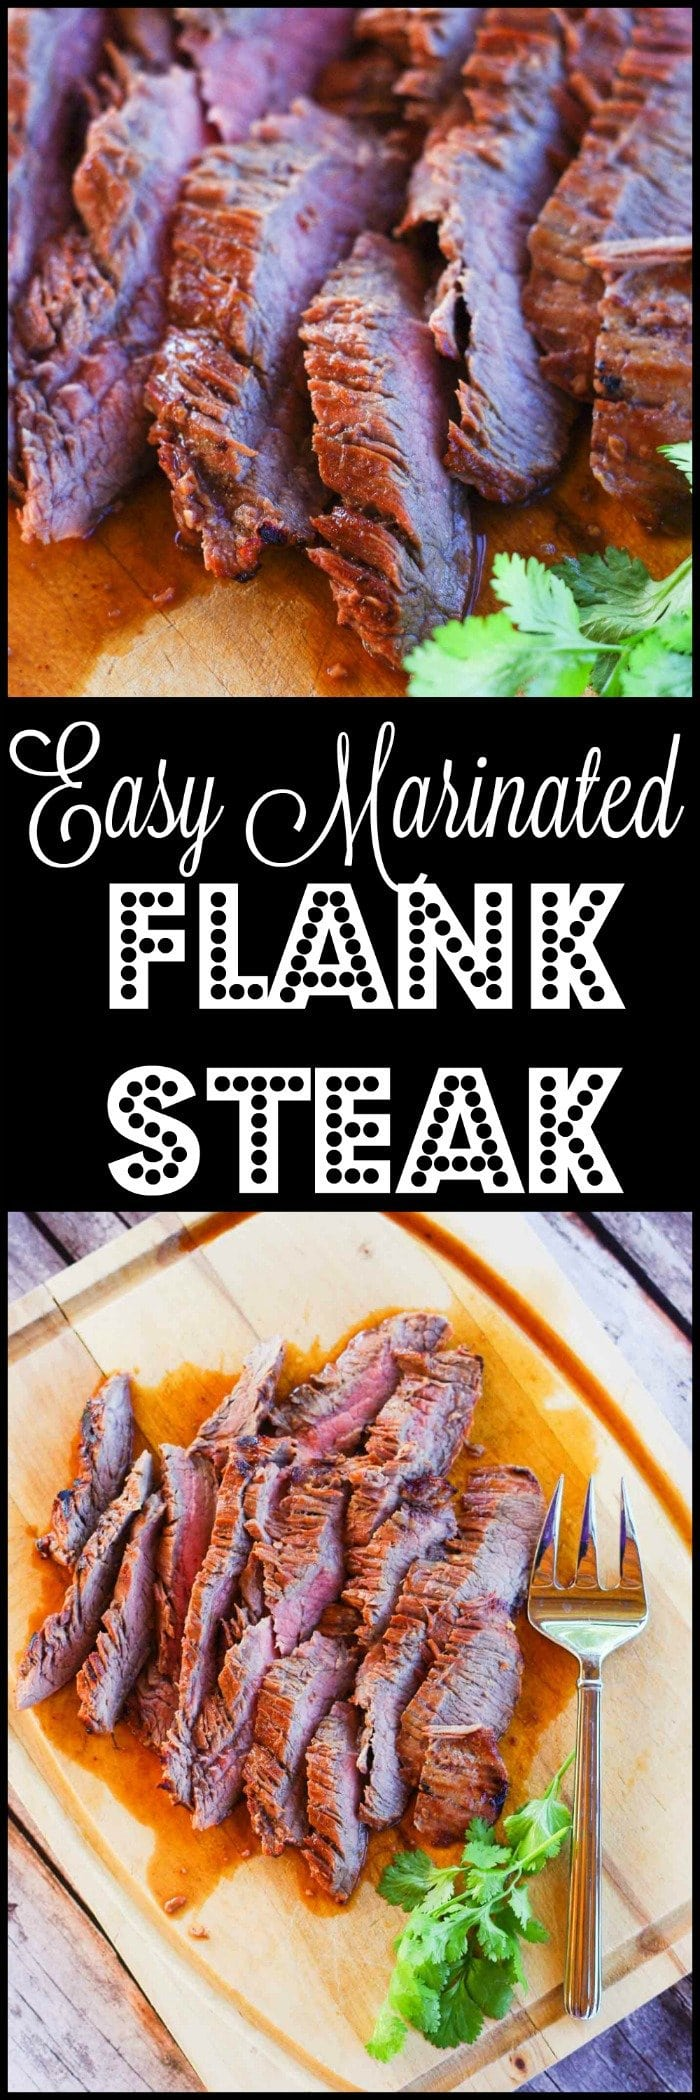 Easy Marinated Flank Steak | www.homeandplate.com | My marinated flank steak is tender, full of flavor and just melts in your mouth.